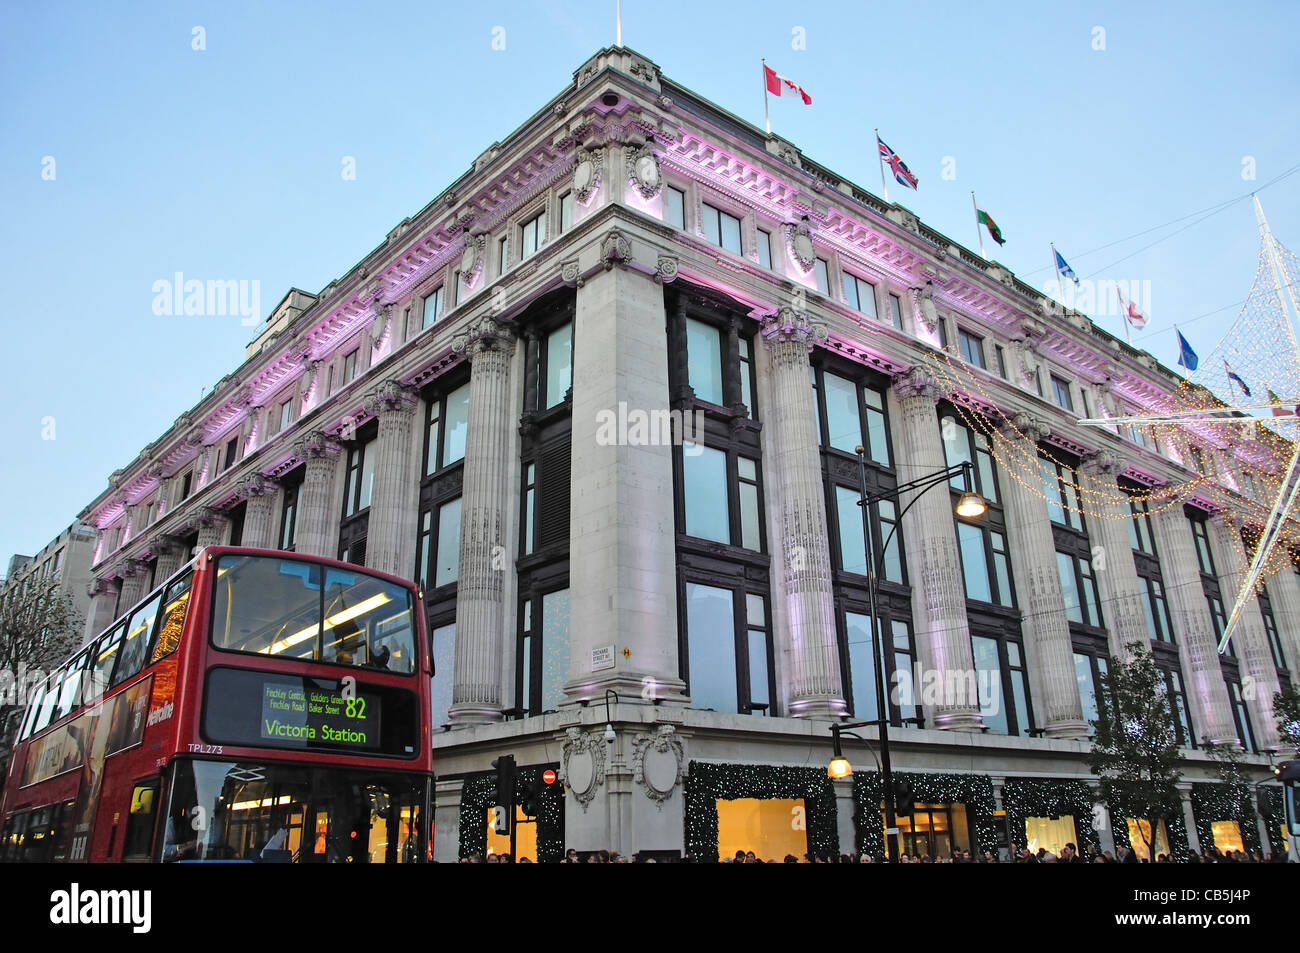 Selfridges department store at Christmas, Oxford Street, City of Westminster, London, Greater London, England, United - Stock Image